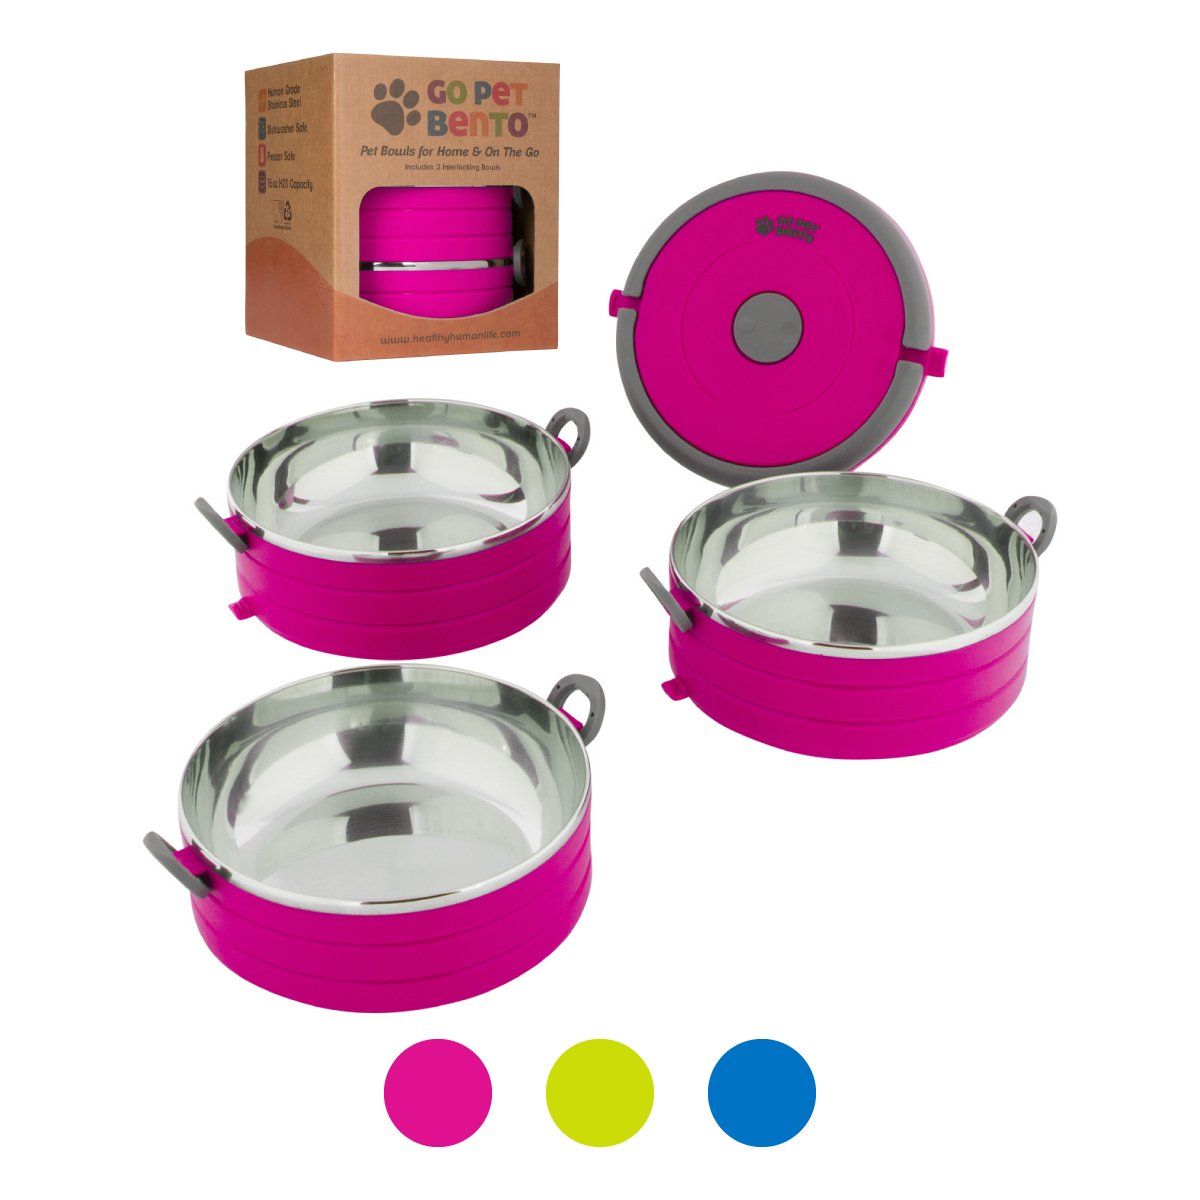 Healthy Human Portable Dog & Pet Travel Bowls with Lid - Human Grade Stainless Steel - Ideal for Food & Water - Pink - 3 Bowl Set